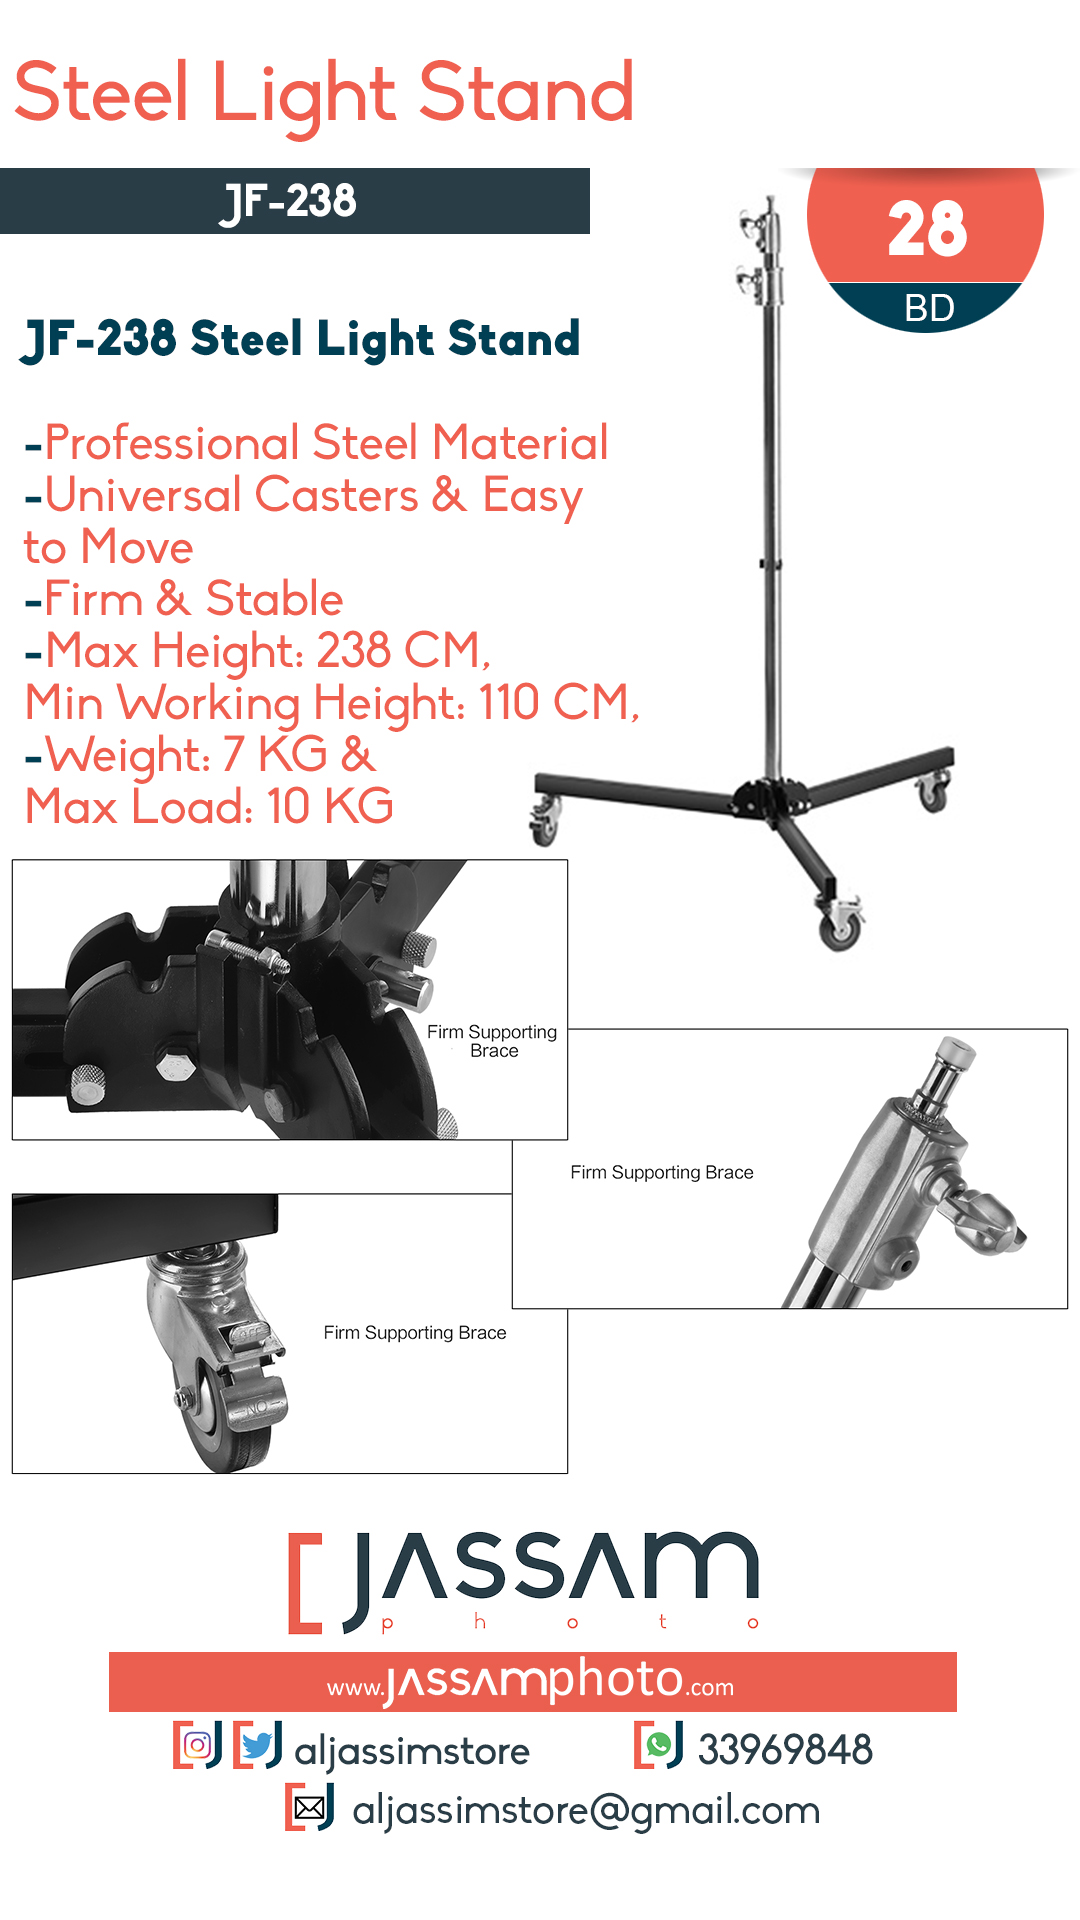 Steel Light Stand JF-238